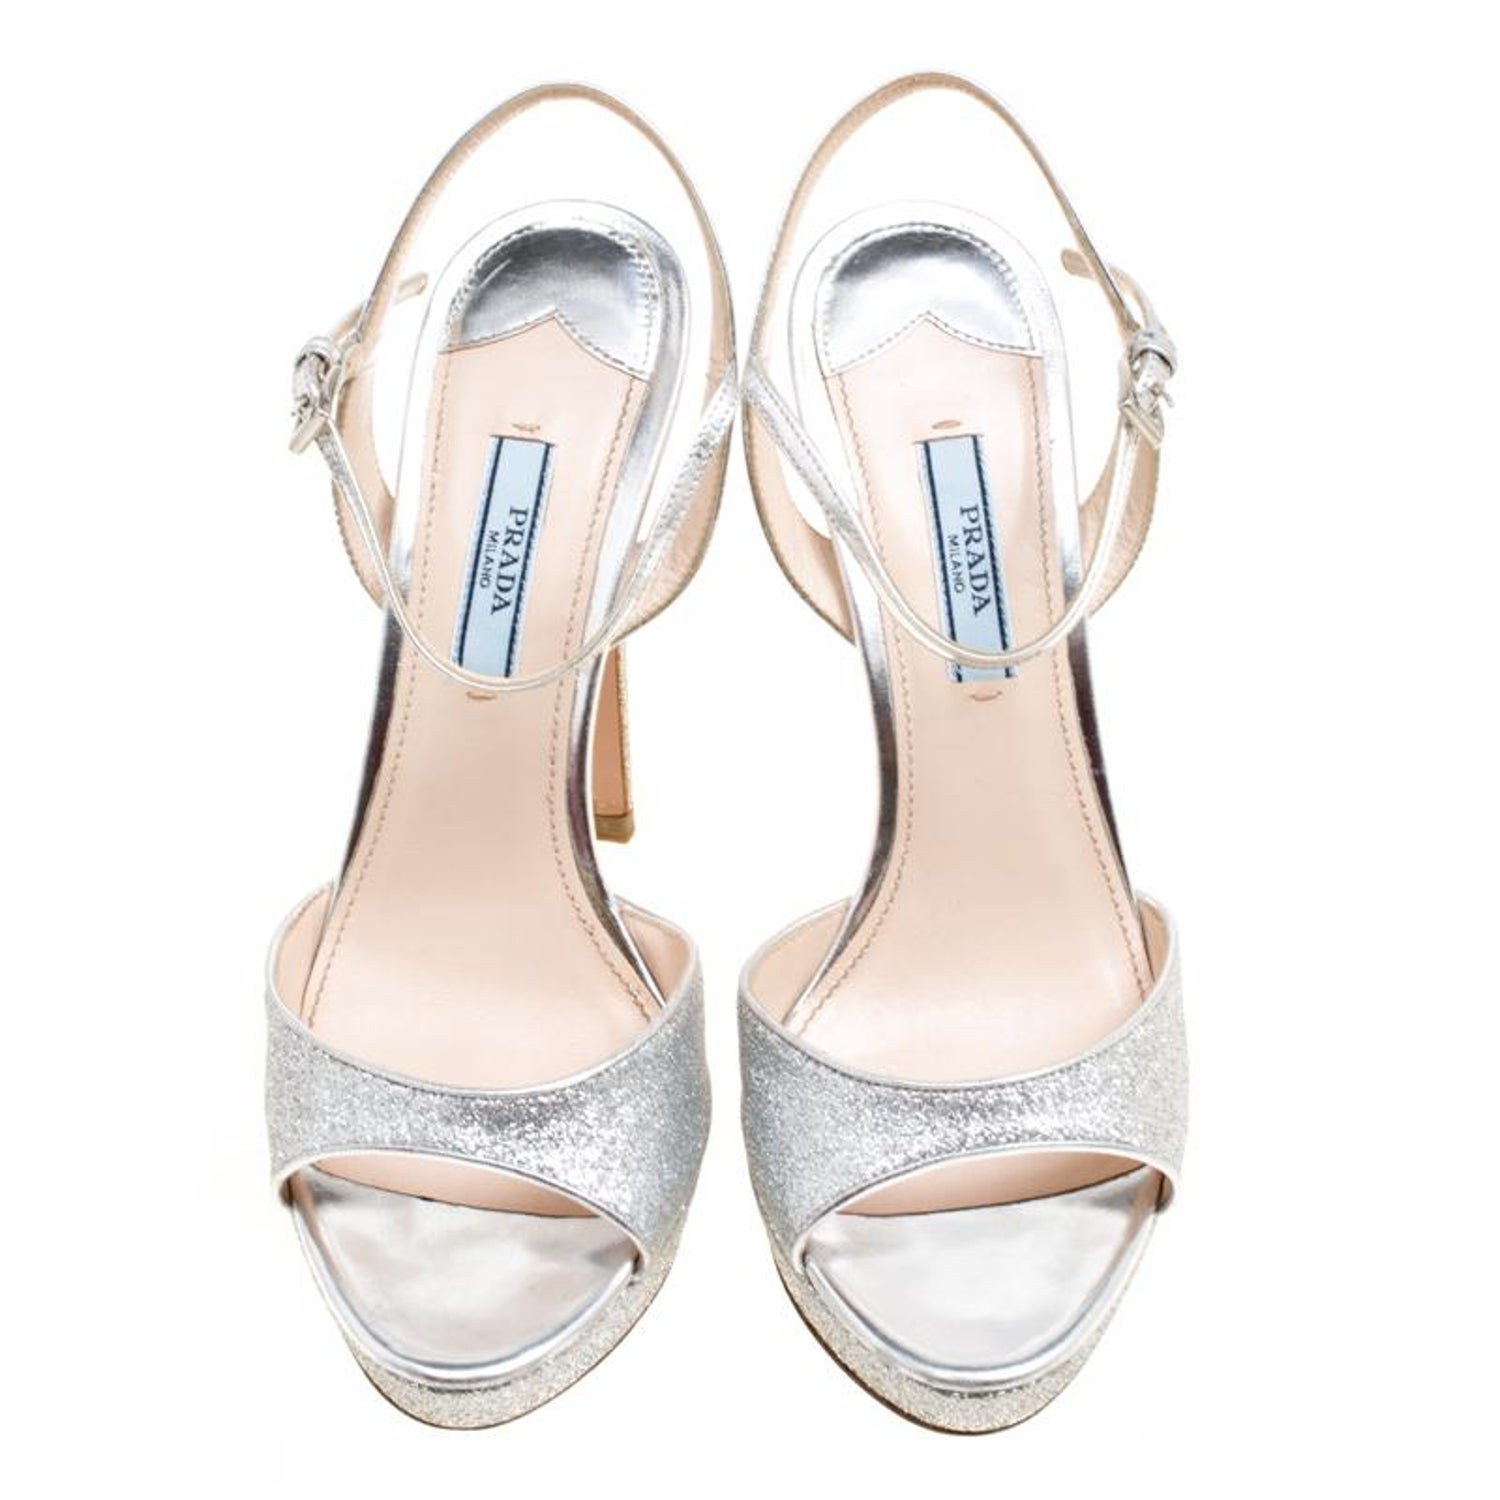 73303460b67 Prada Silver Glitter and Leather Ankle Strap Platform Sandals Size 37 For  Sale at 1stdibs